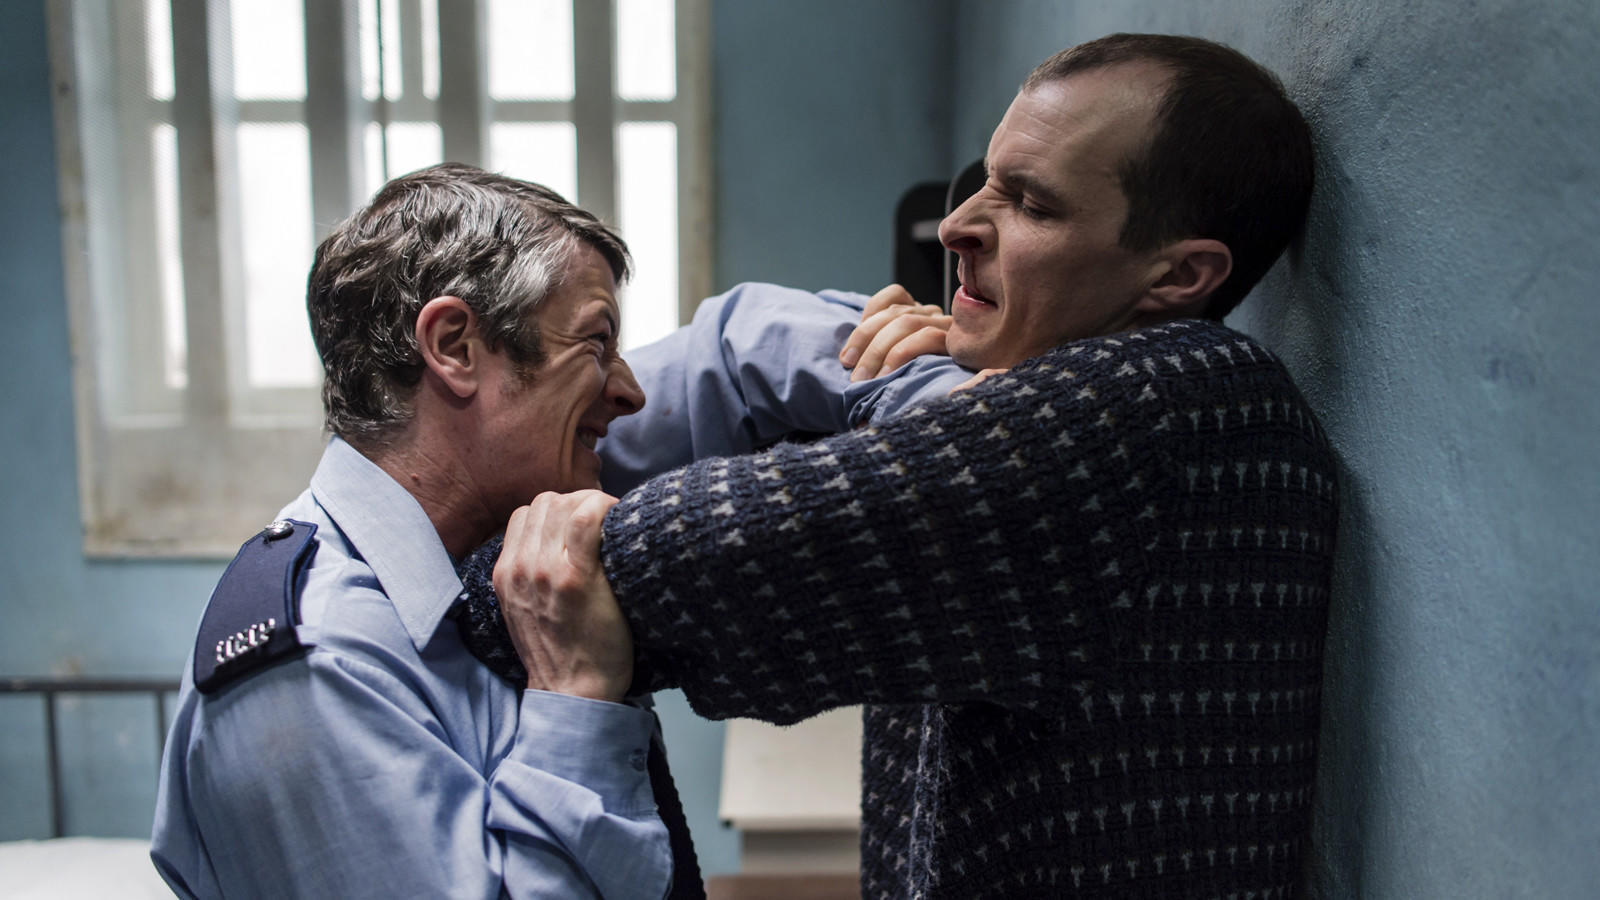 Review: The terrific prison break movie 'Maze' mixes excitement and emotional connection